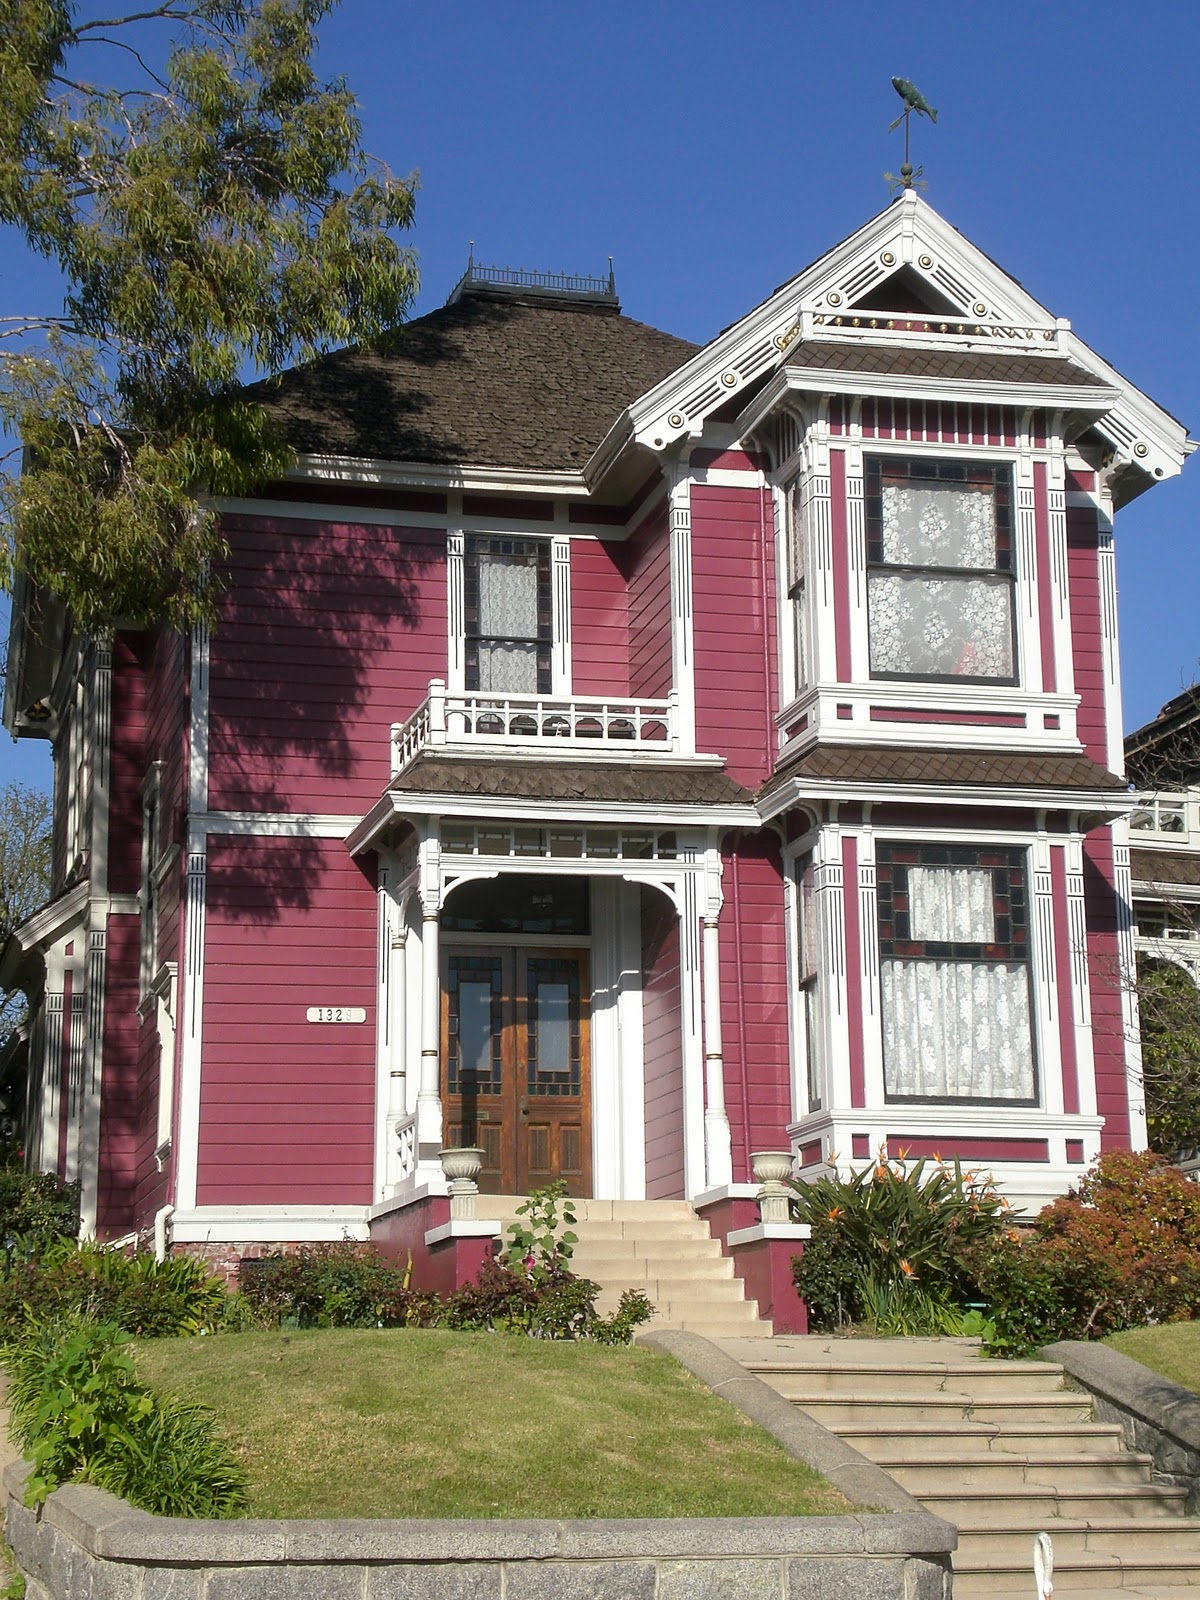 Innes house the charmed legacy wiki fandom powered by - House of tv show ...